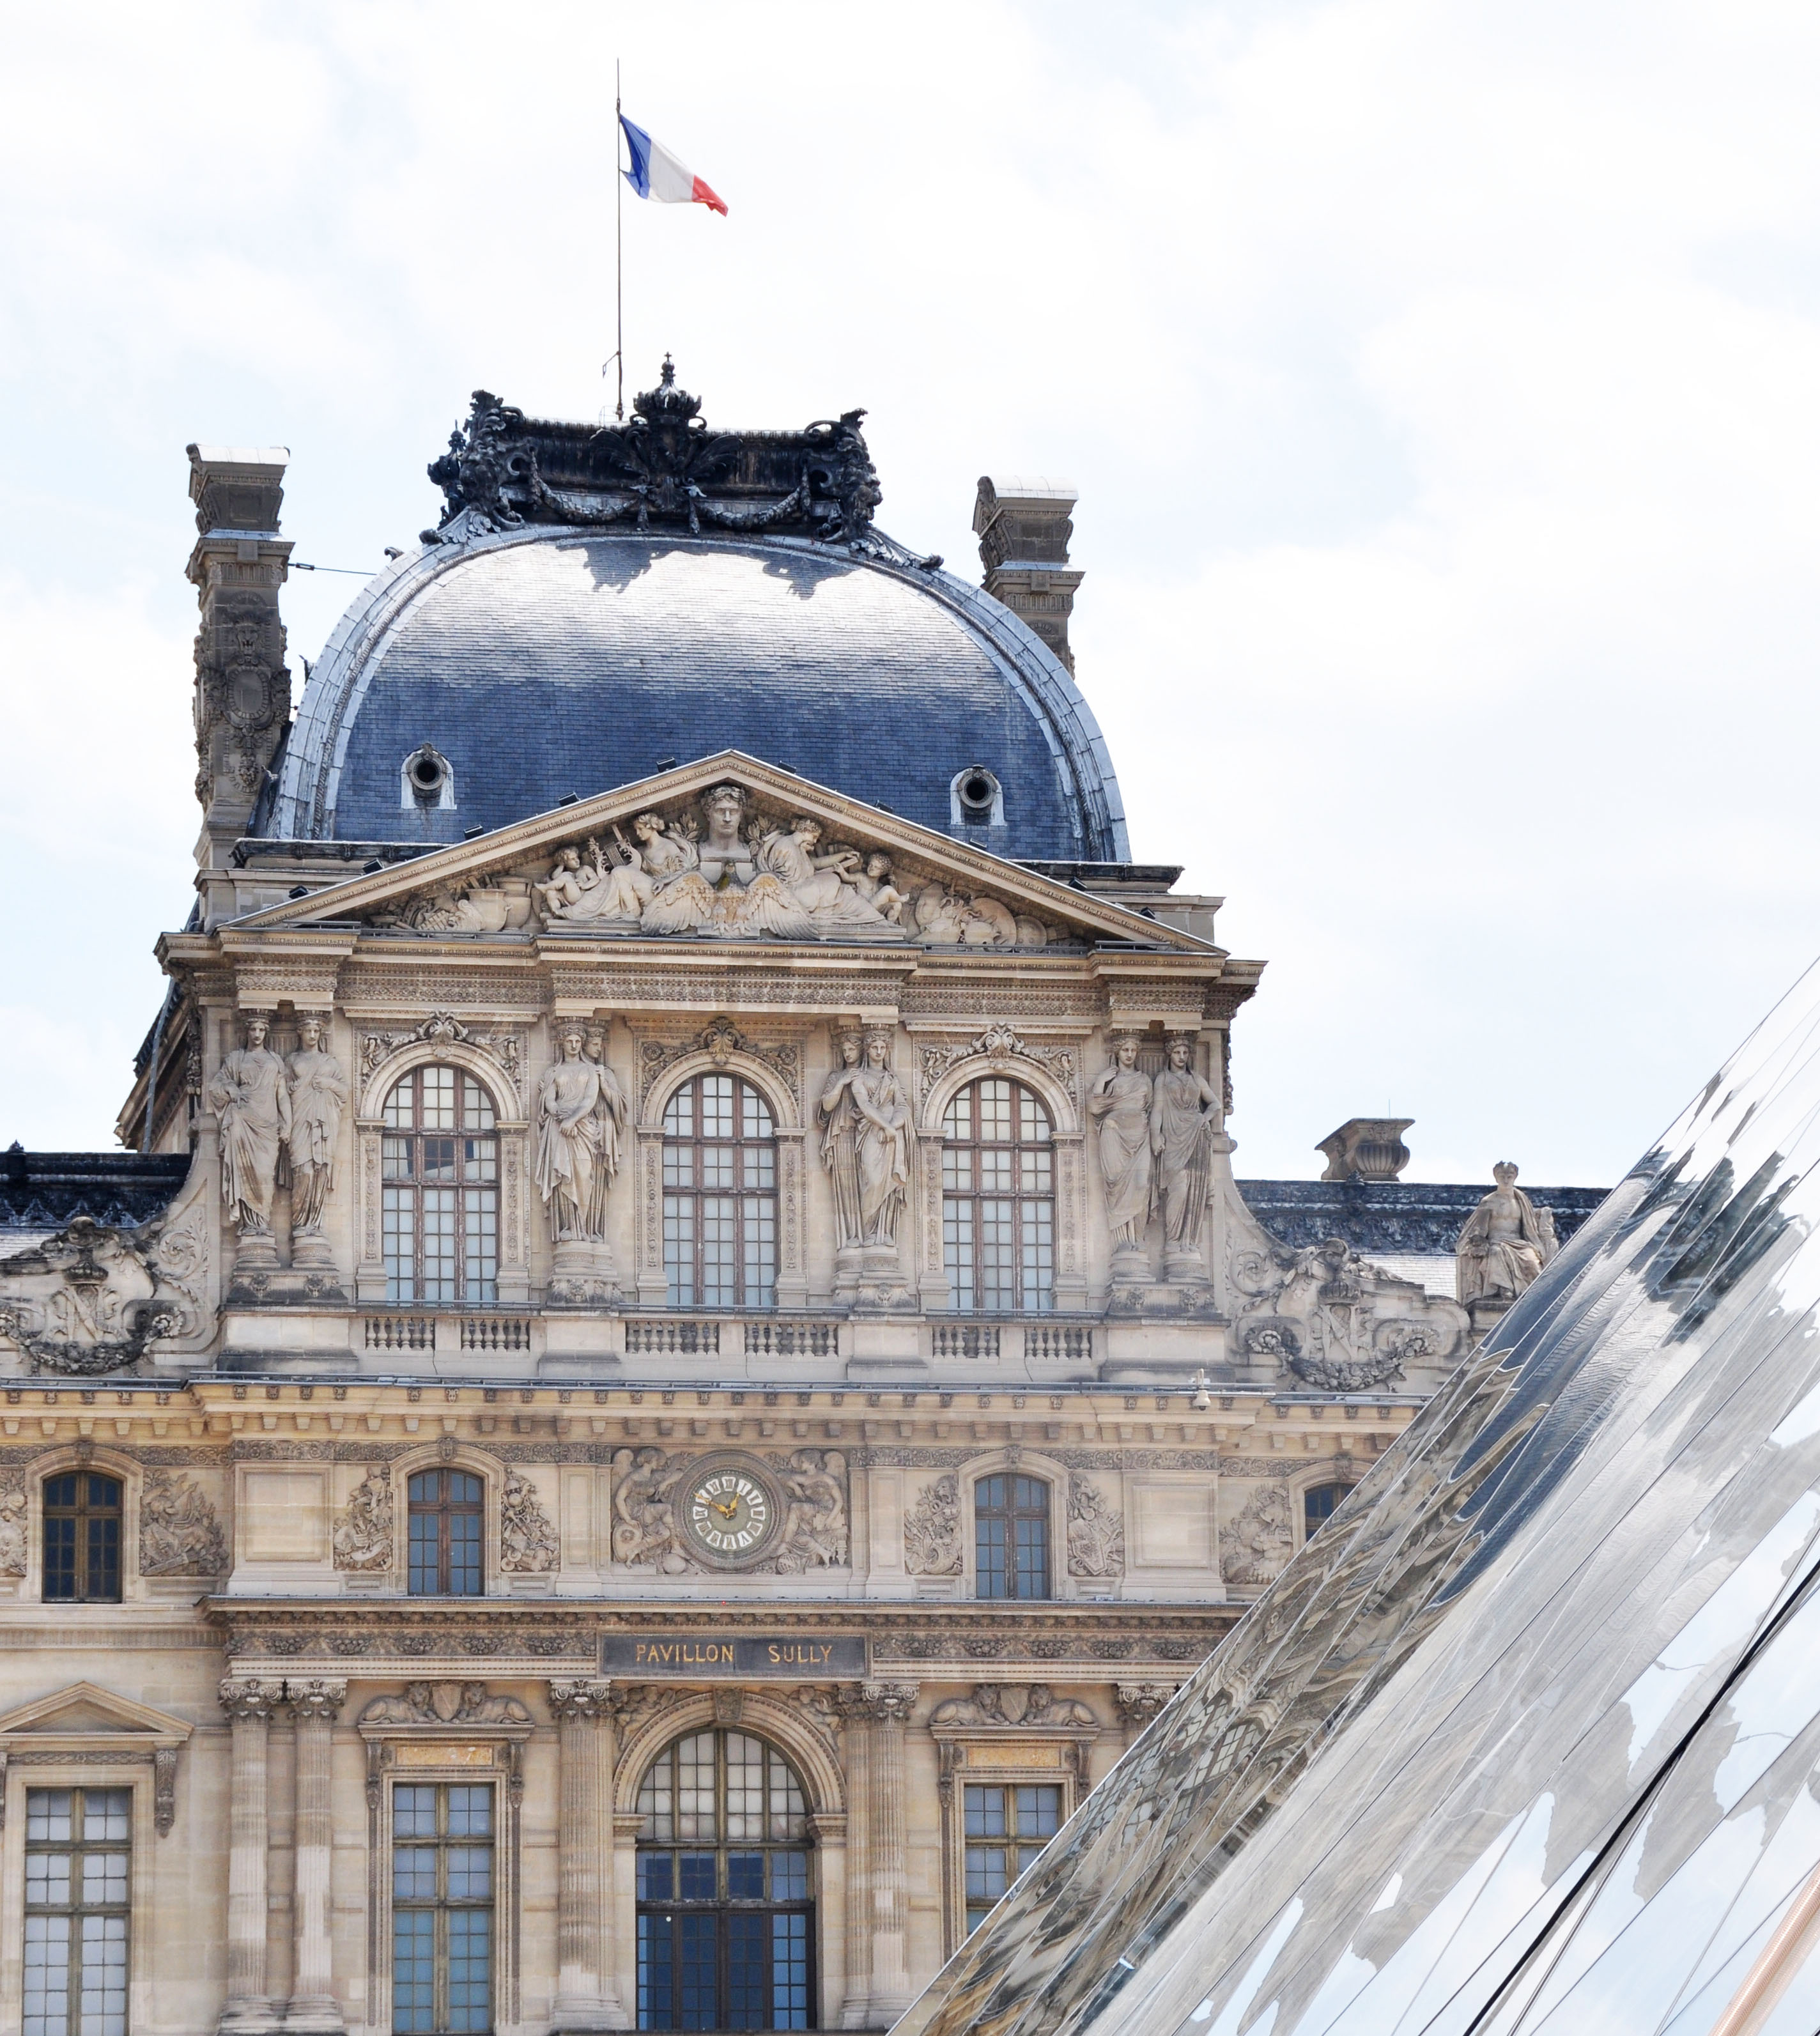 La Louvre, Paris